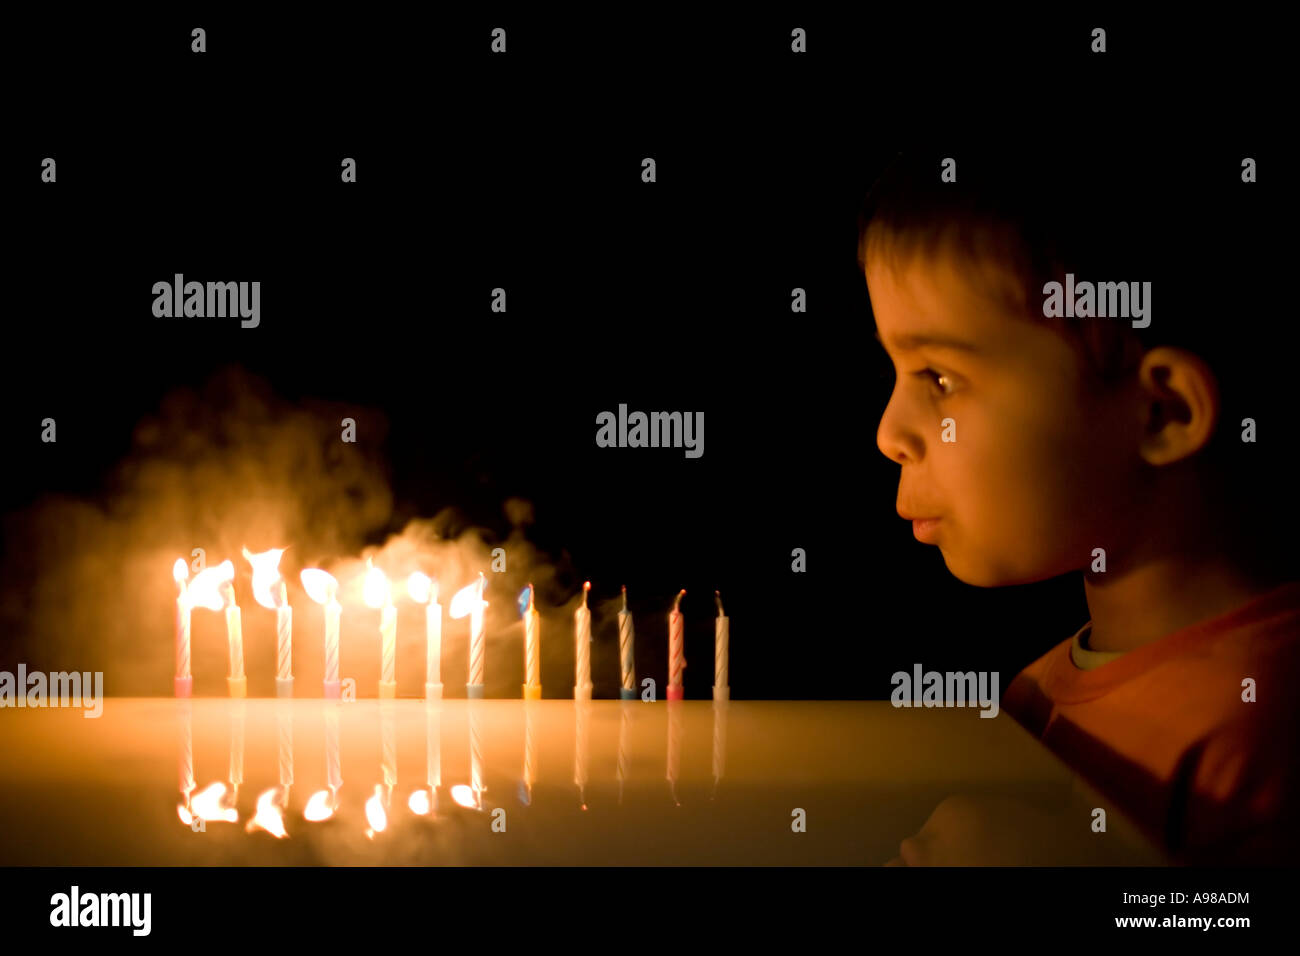 Boy aged 5 blows out 12 candles Stock Photo